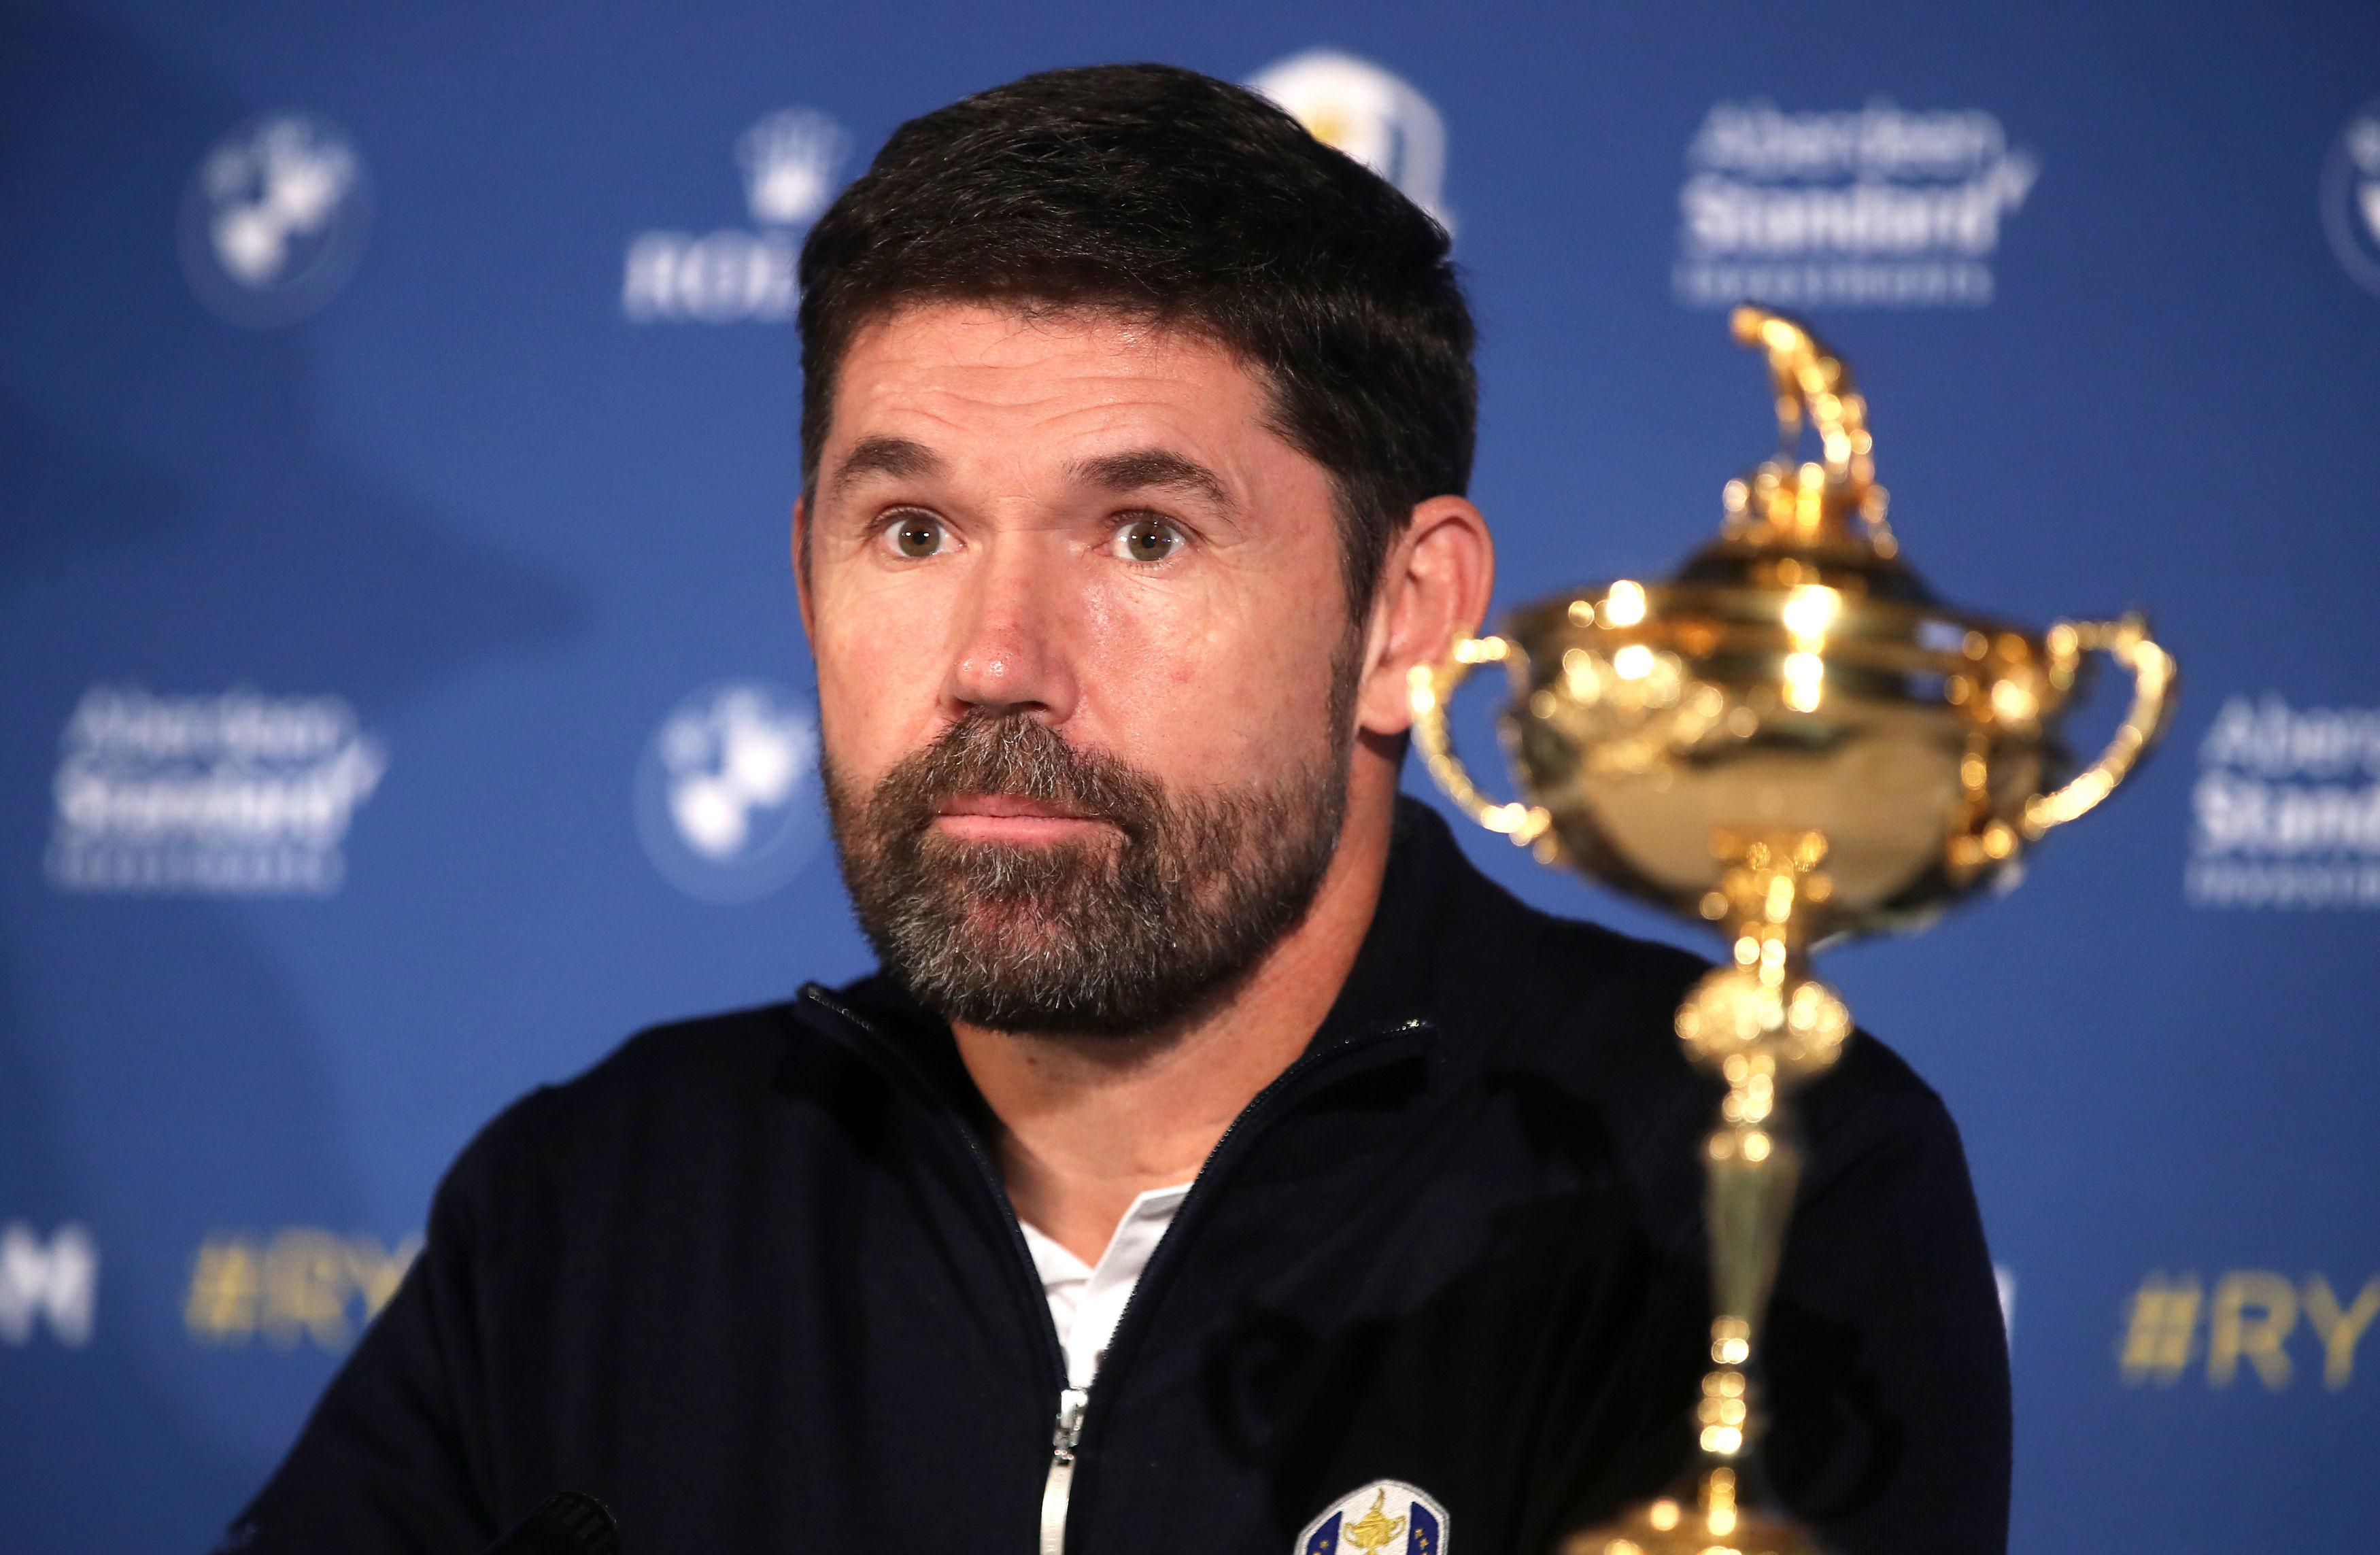 European Ryder Cup captain Padraig Harrington during the Team Europe Ryder Cup Press Conference at Wentworth today